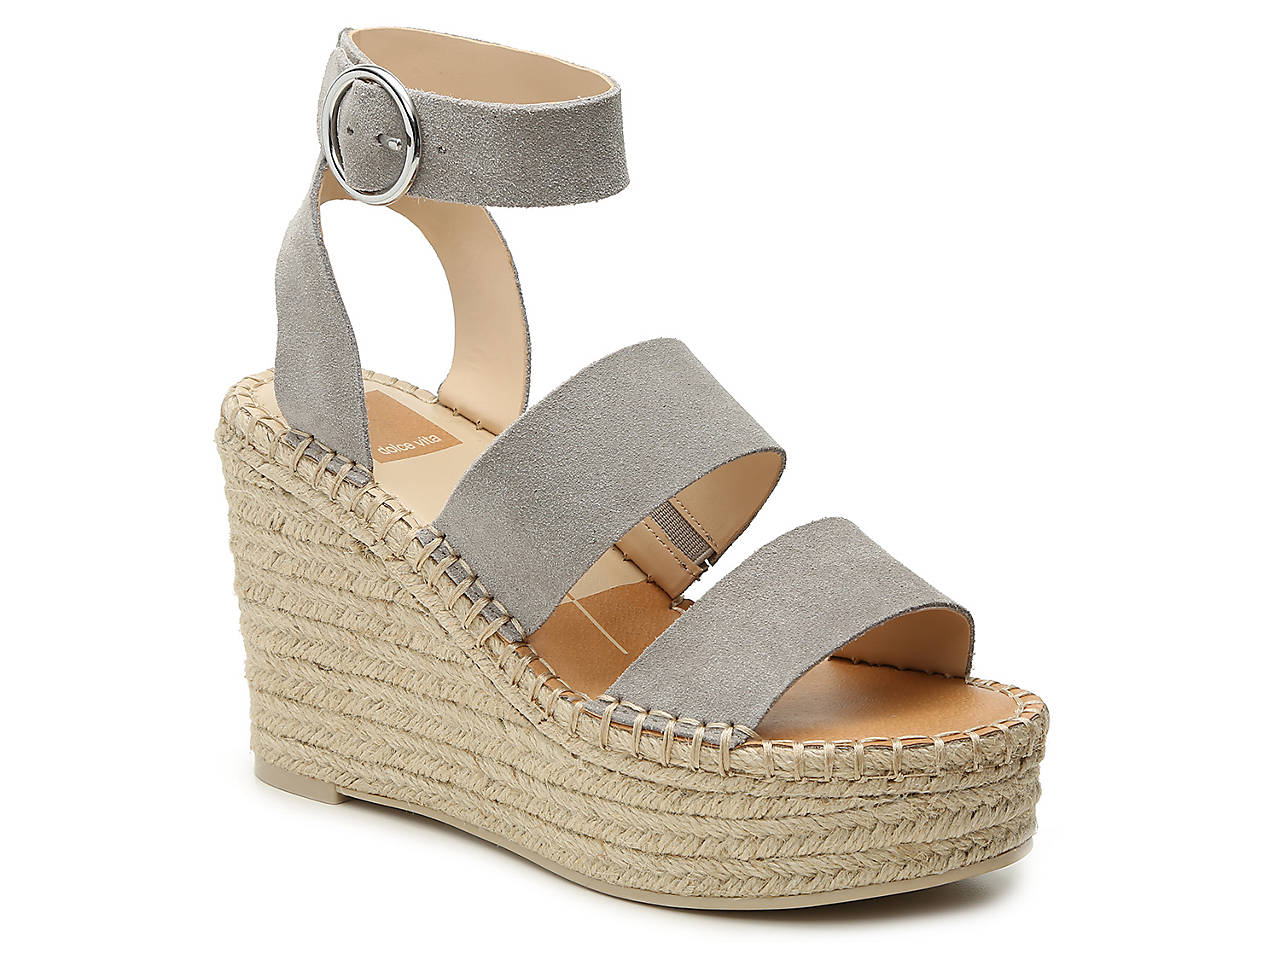 4900044c89f Dolce Vita Shae Espadrille Wedge Sandal Women s Shoes